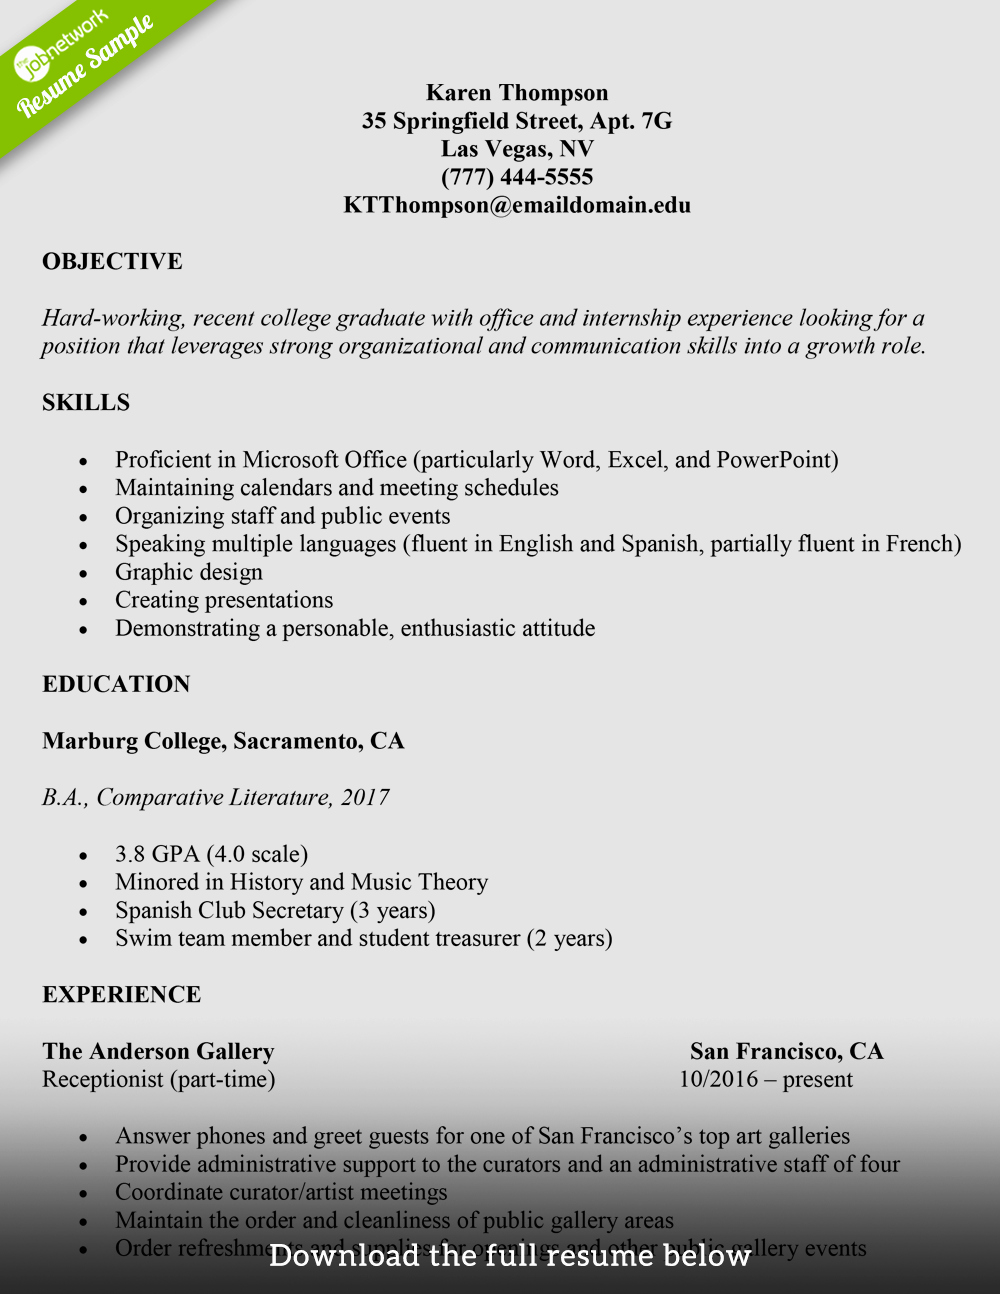 Sample Resume for College Graduate New How to Write A College Student Resume with Examples